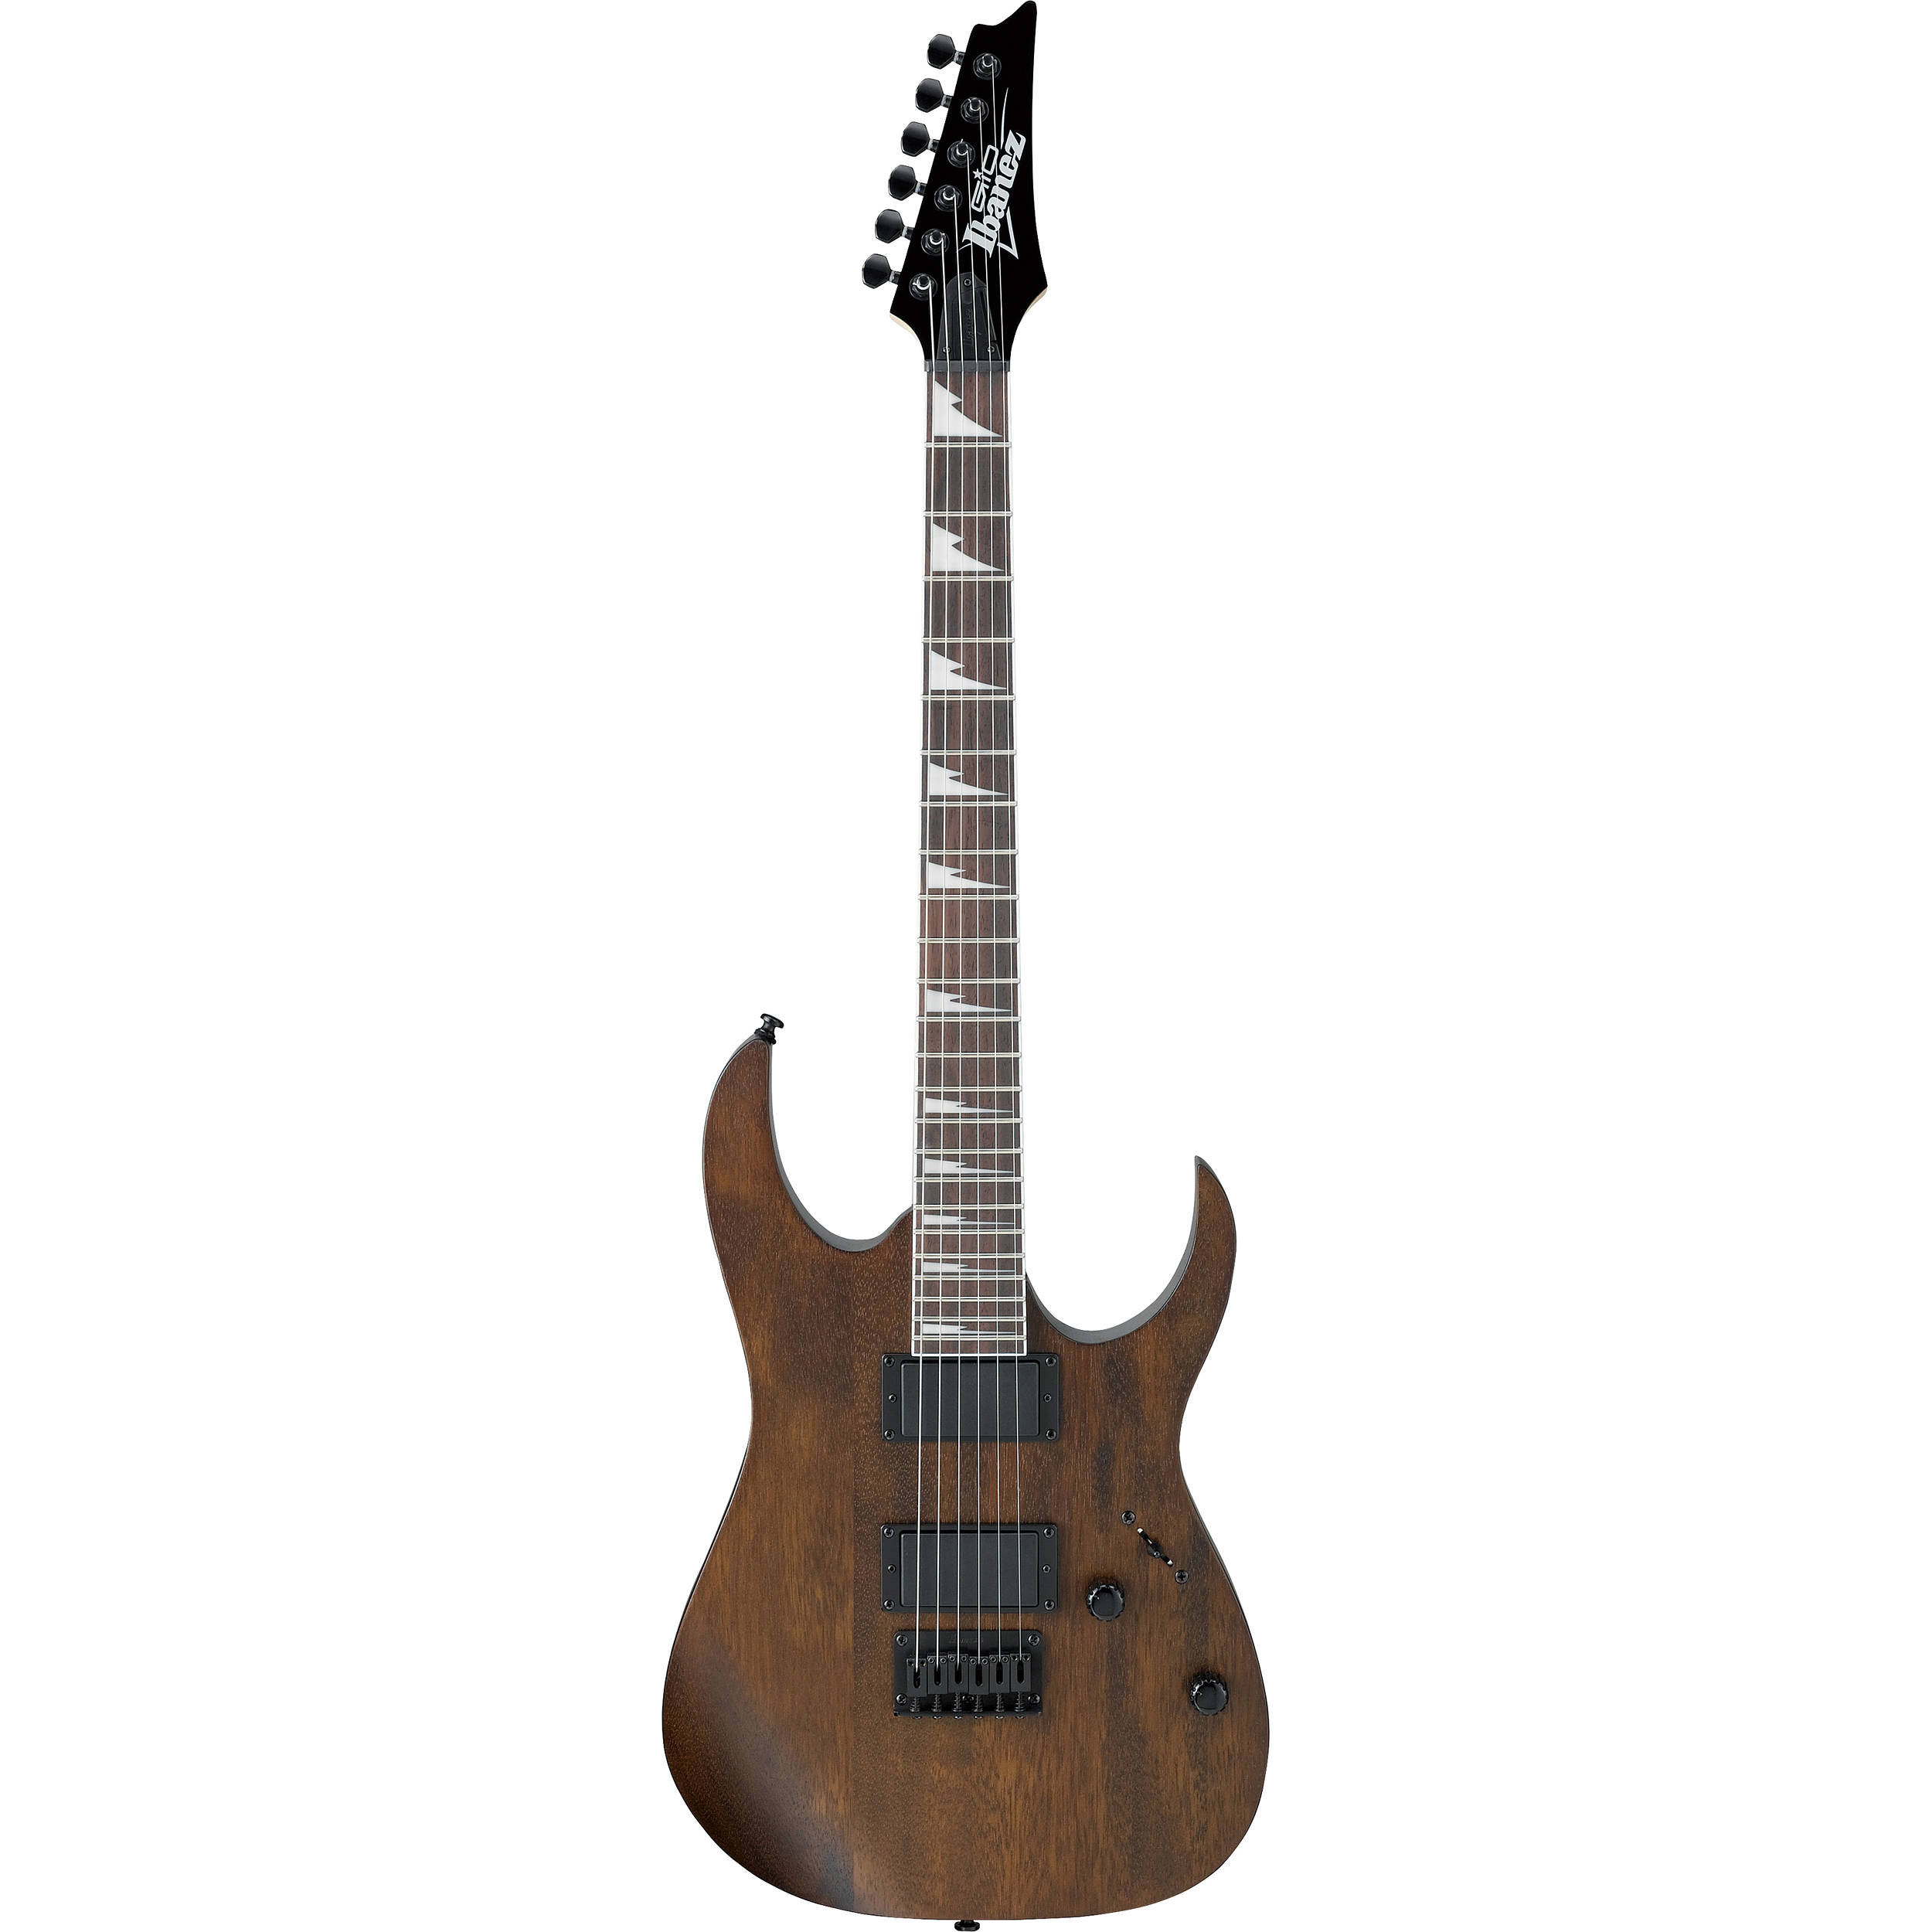 ibanez grg121dx gio series electric guitar grg121dxwnf b h photo. Black Bedroom Furniture Sets. Home Design Ideas